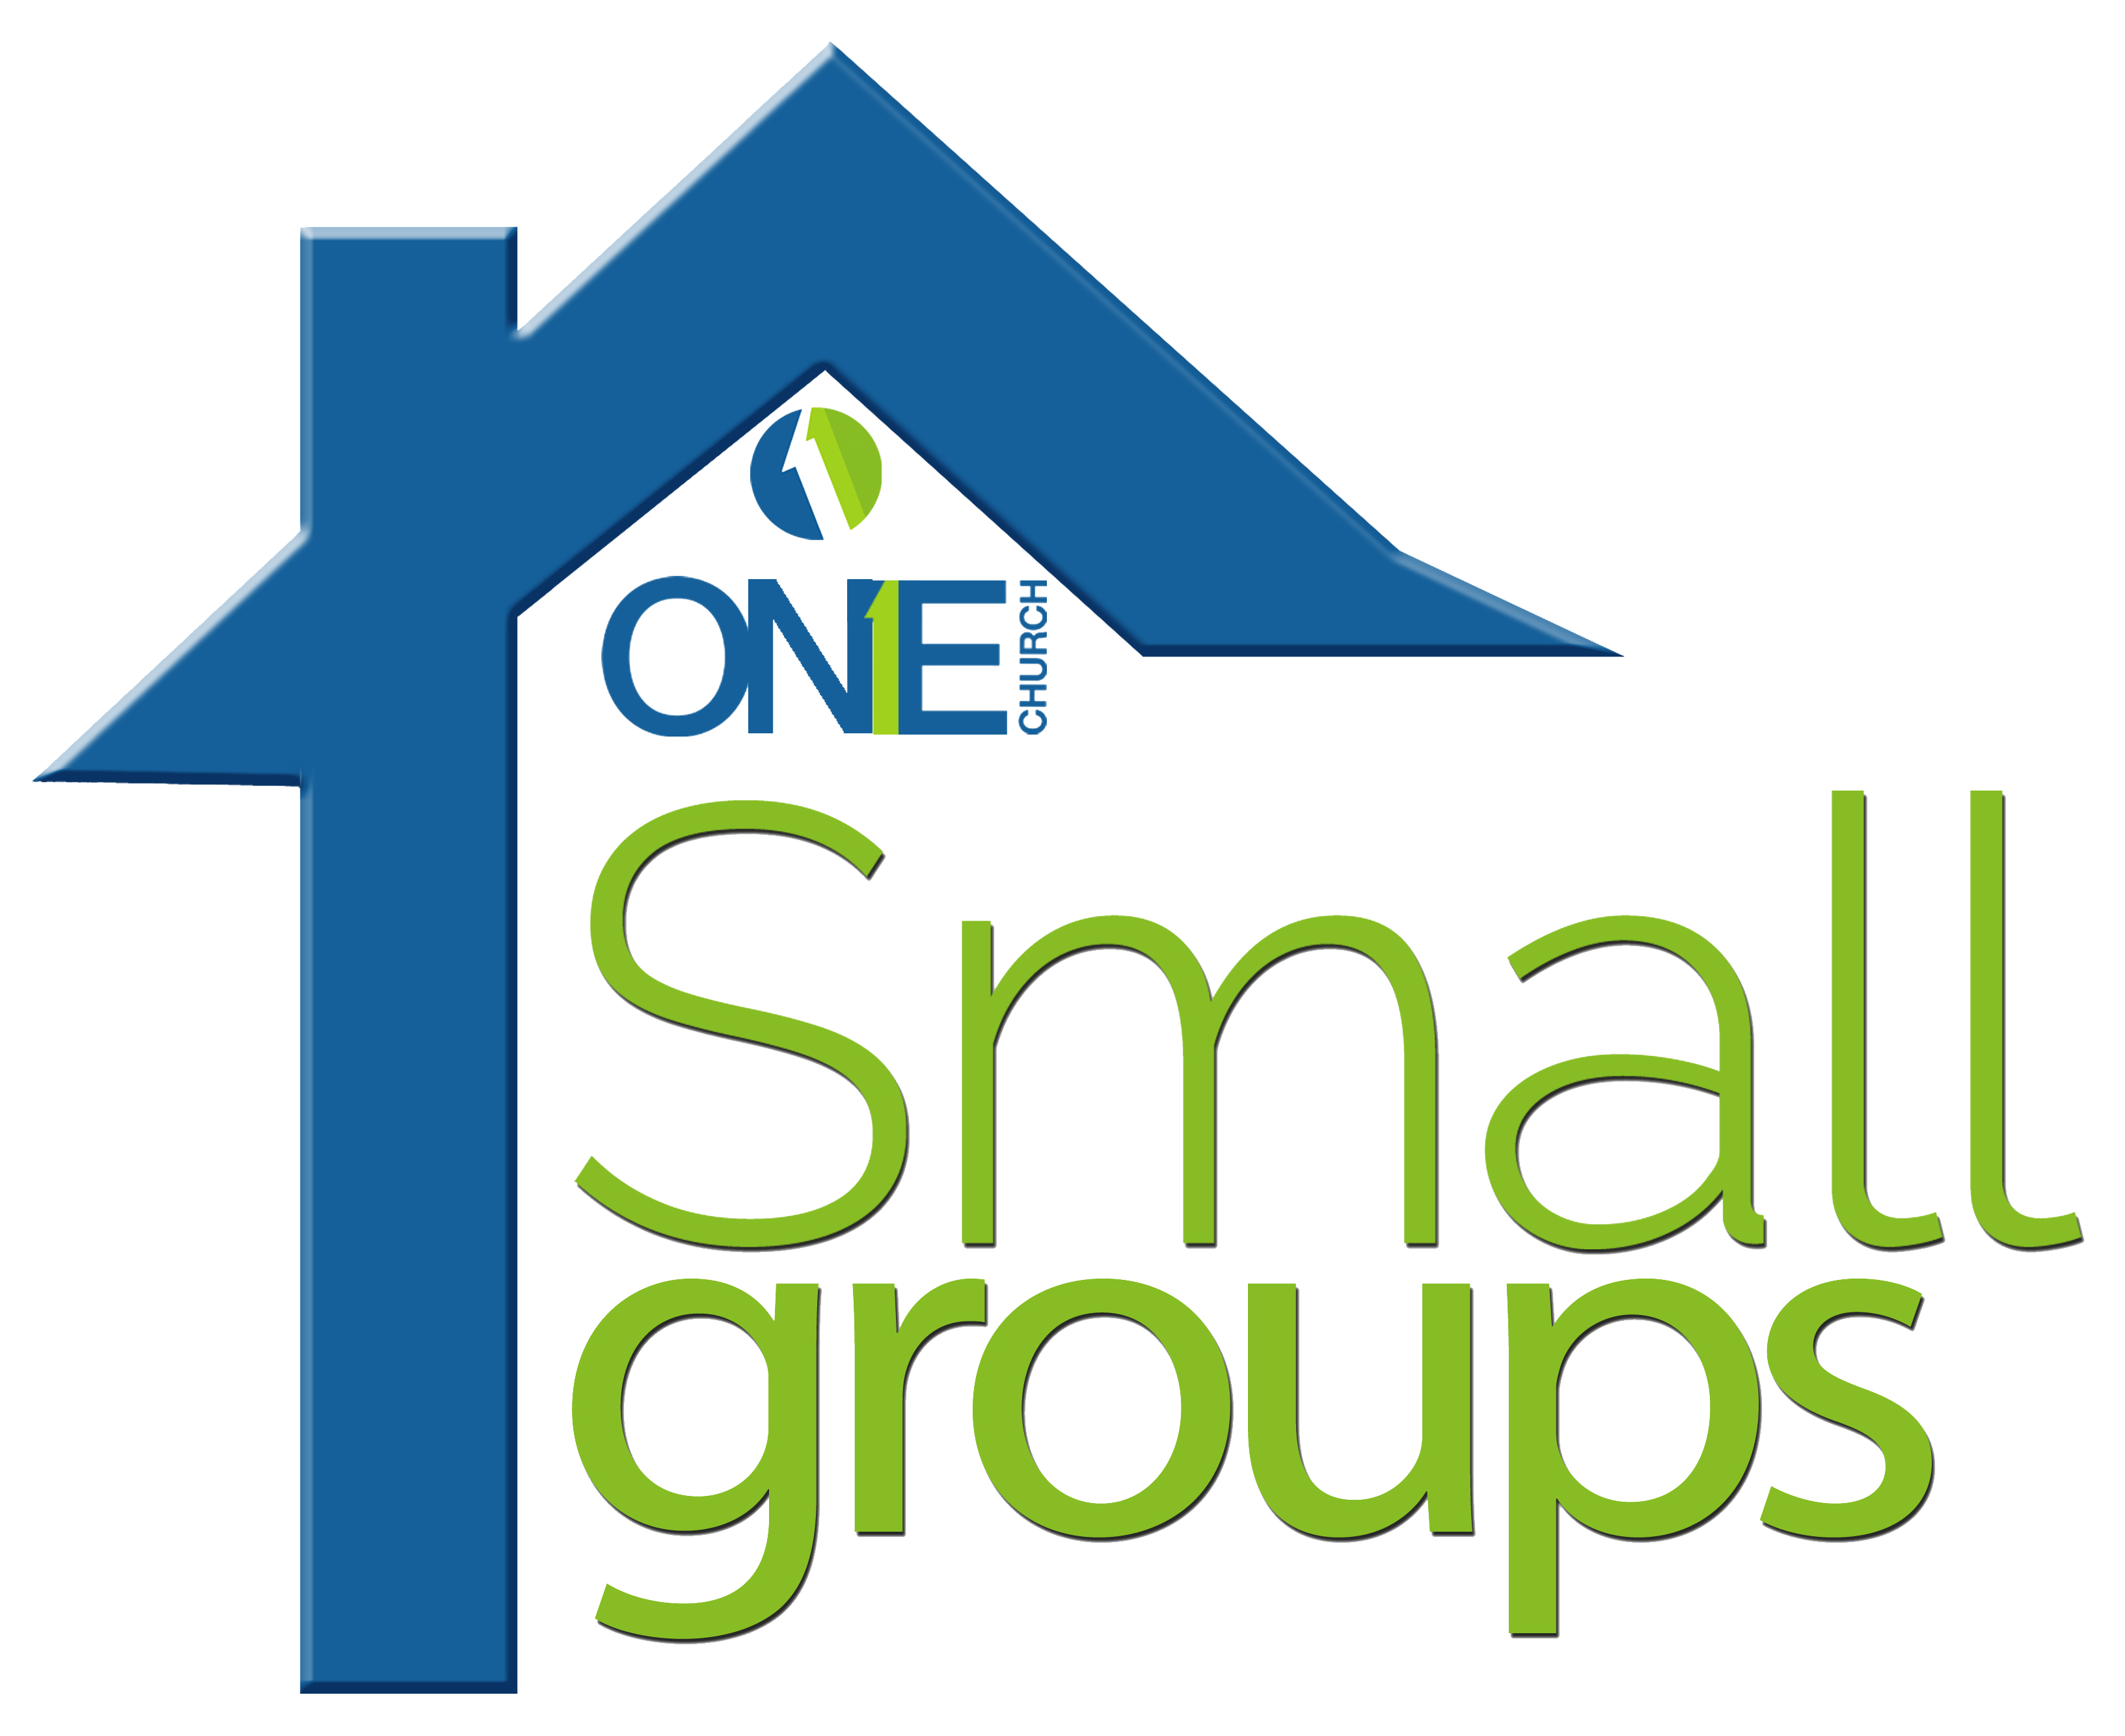 Meeting clipart small group Leaders Small One Groups Church